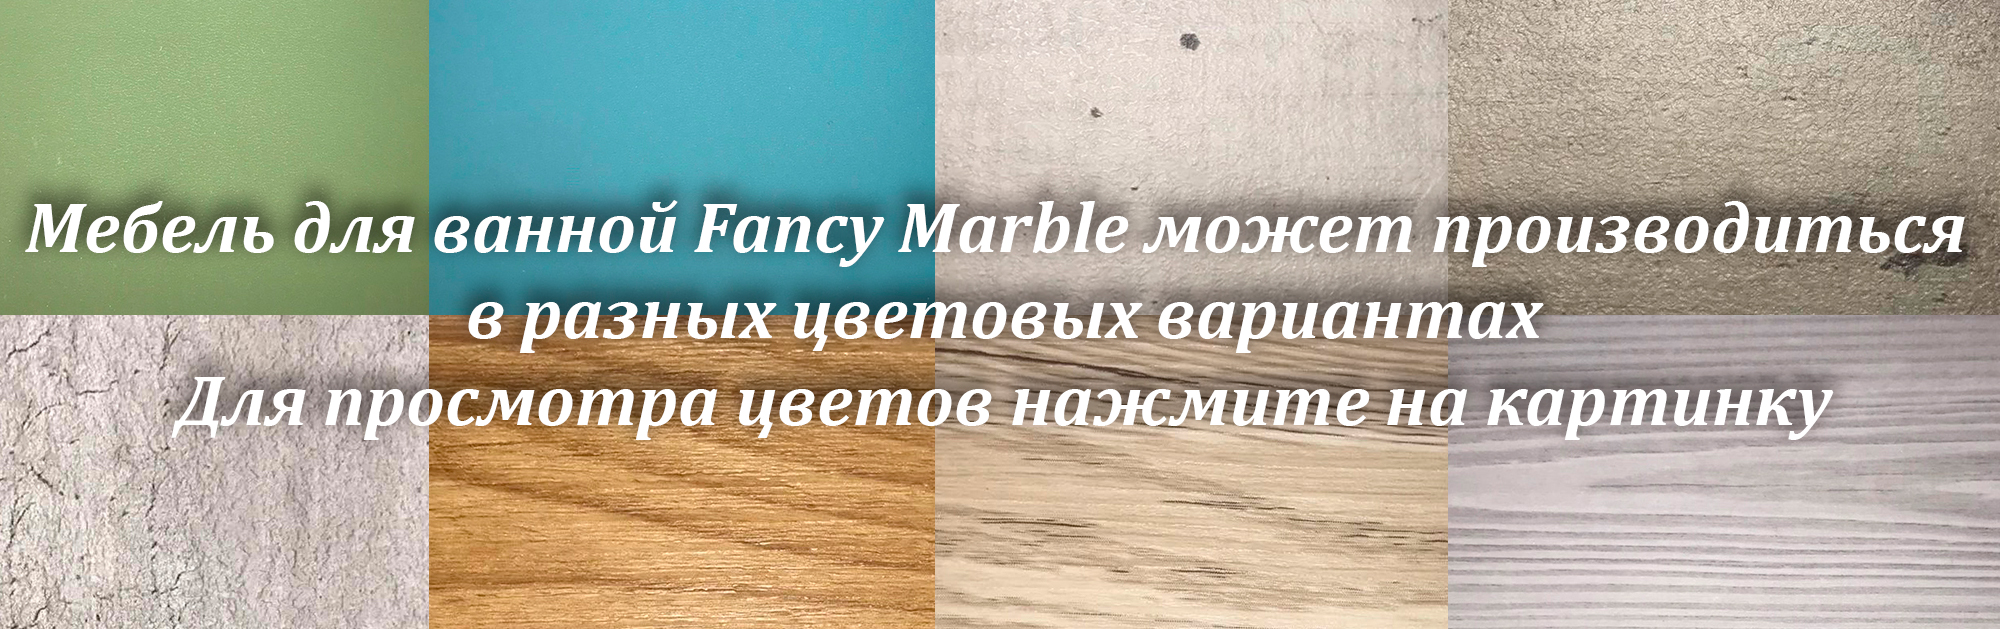 Цвета мебели Fancy Marble - livron mini